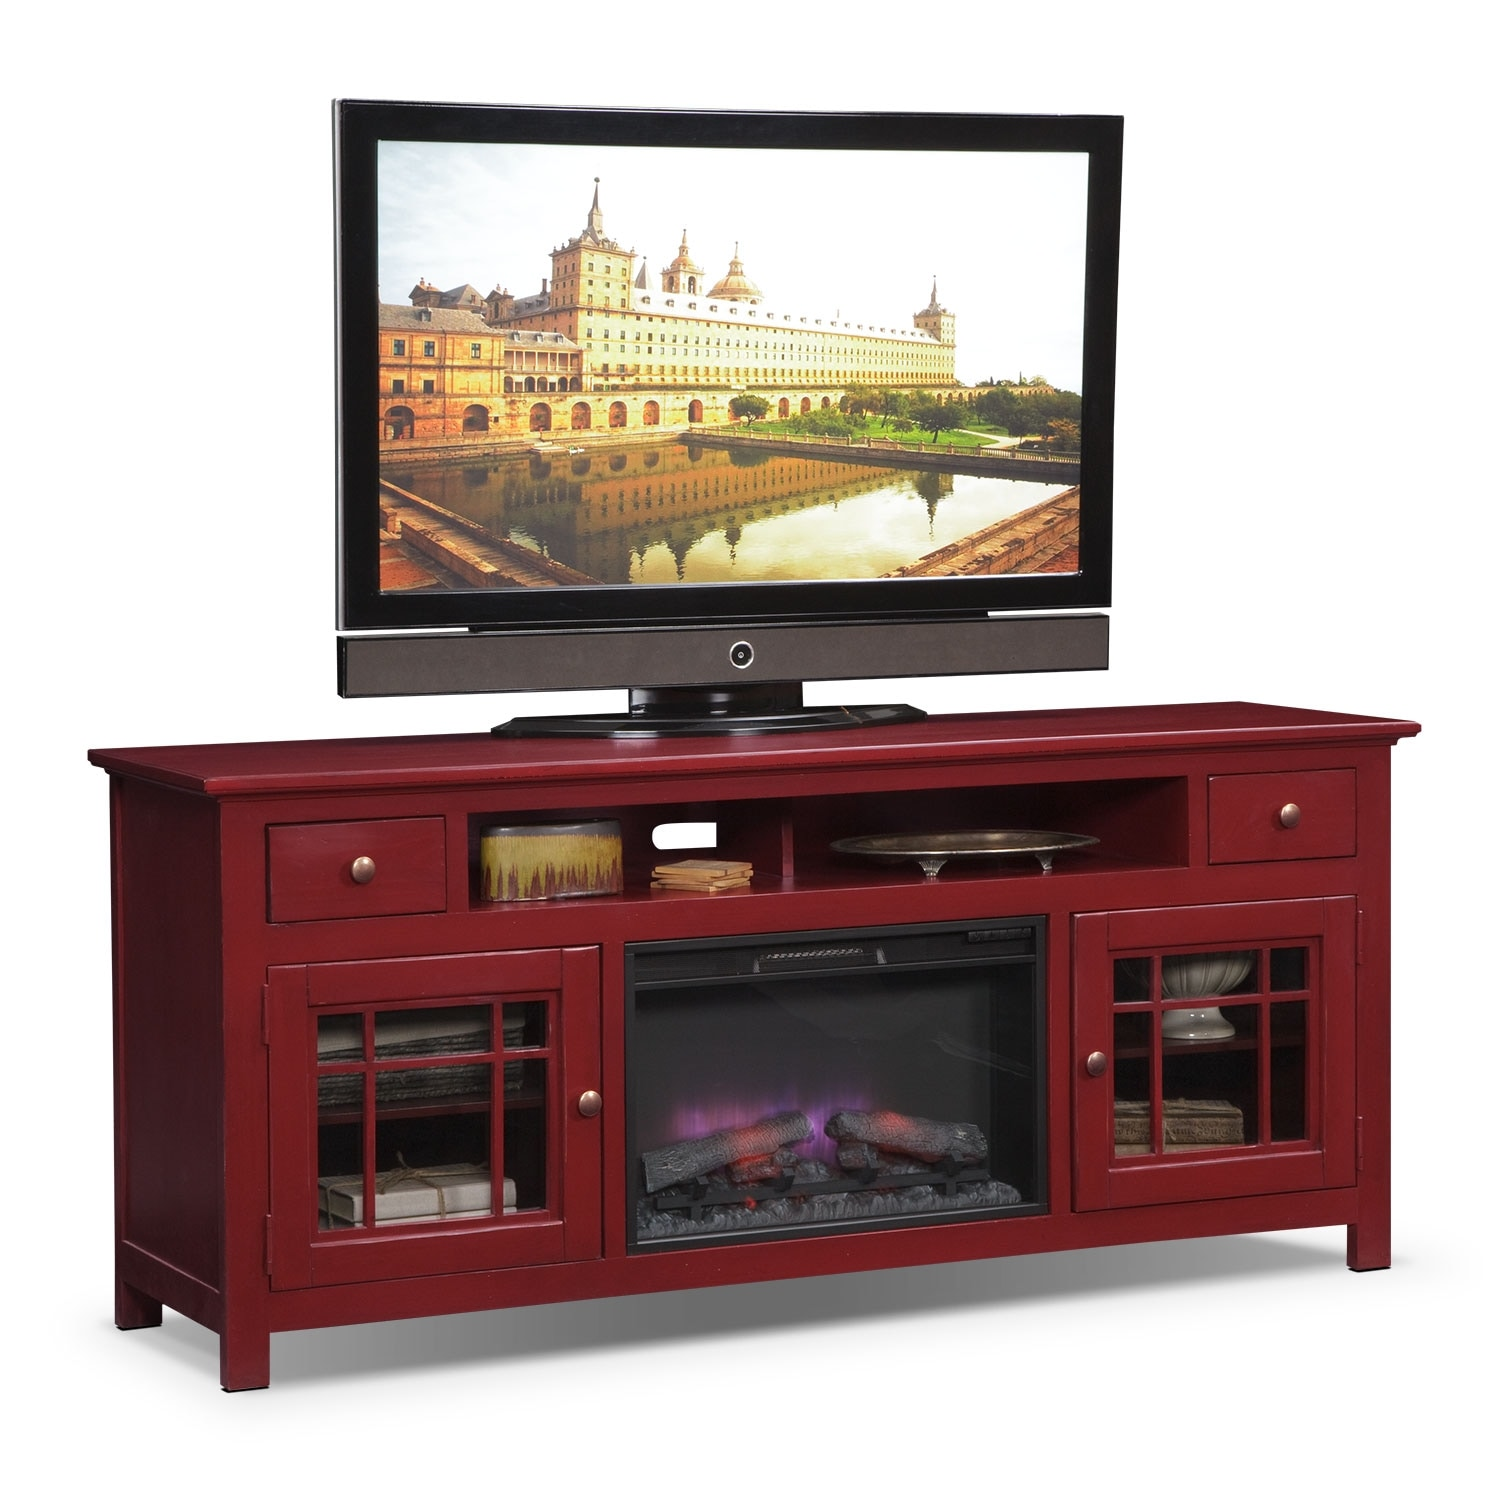 Merrick 74 Fireplace Tv Stand Value City Furniture